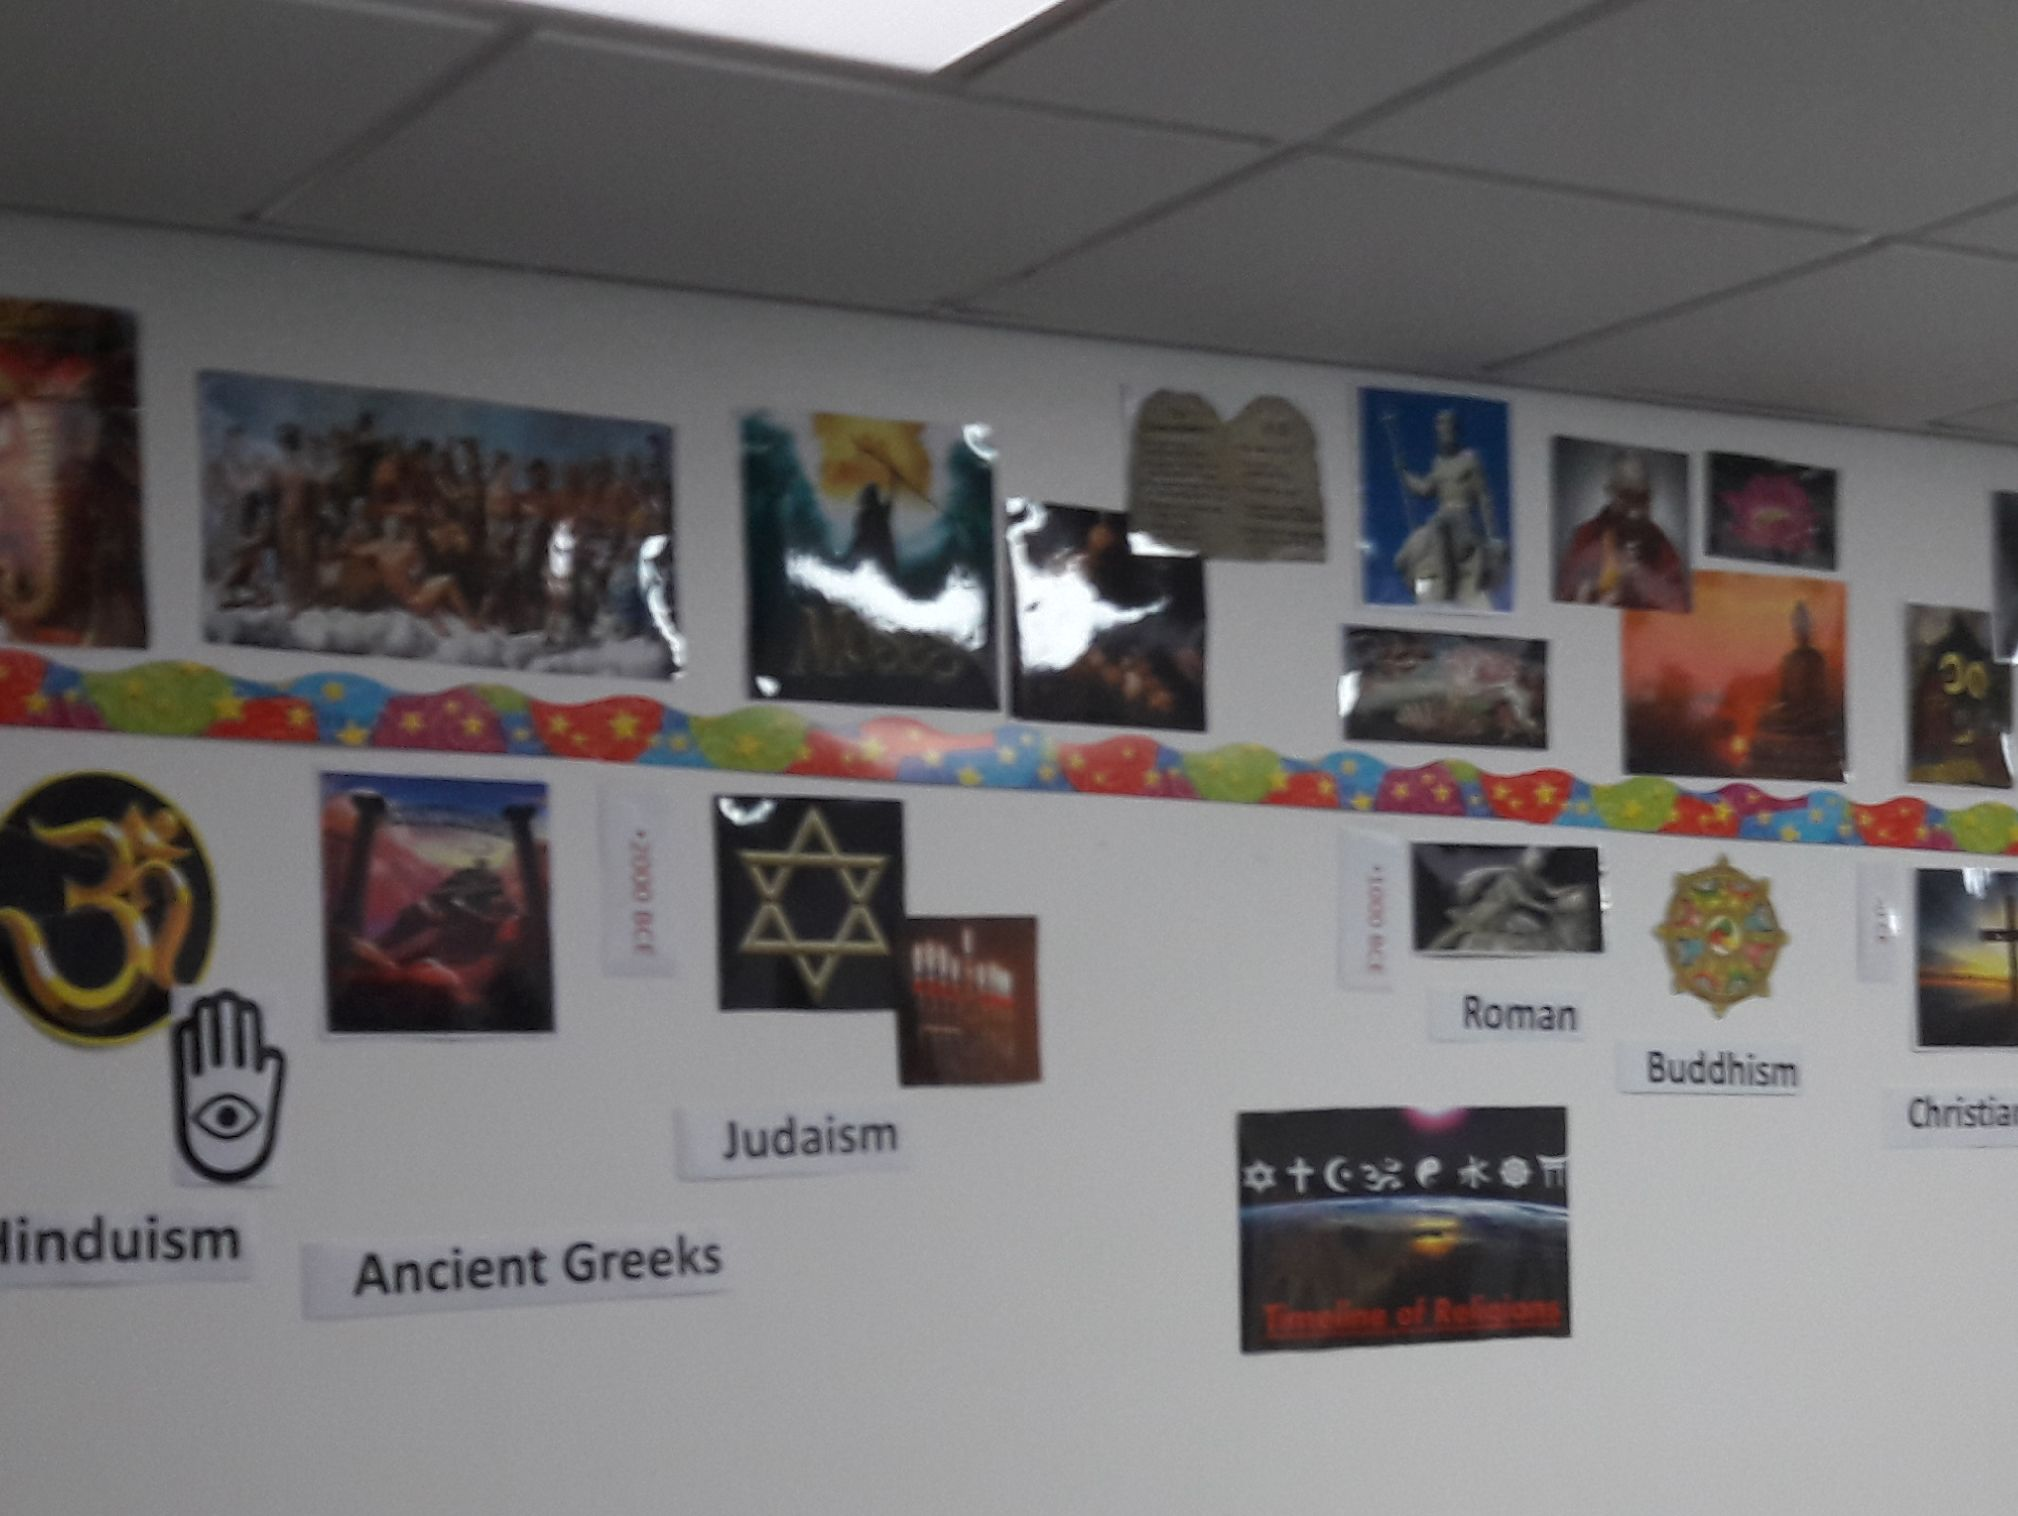 Timeline of Religions Display